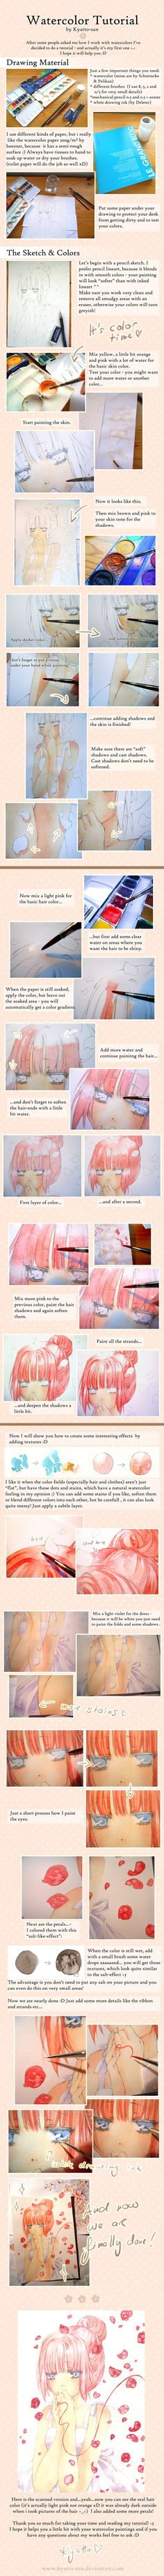 Just Be Friends - Watercolor Tutorial by Kyatto-san.deviantart.com on @deviantART